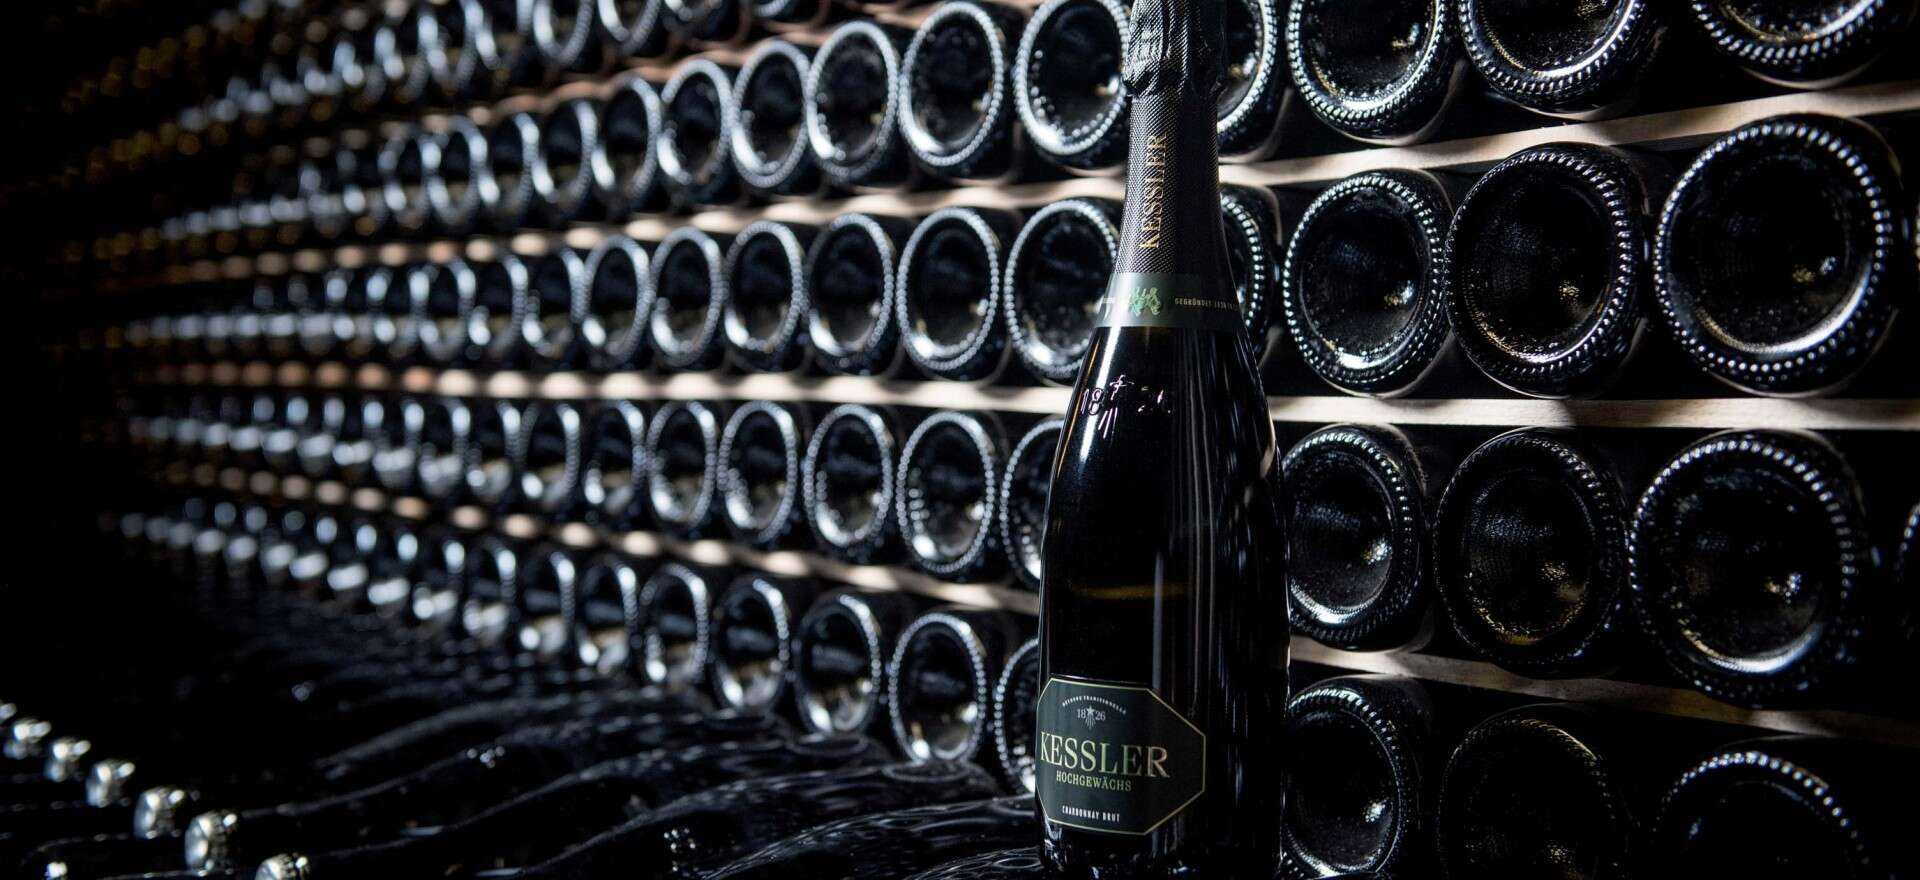 Producer of sparkling wines Kessler Training and Consulting